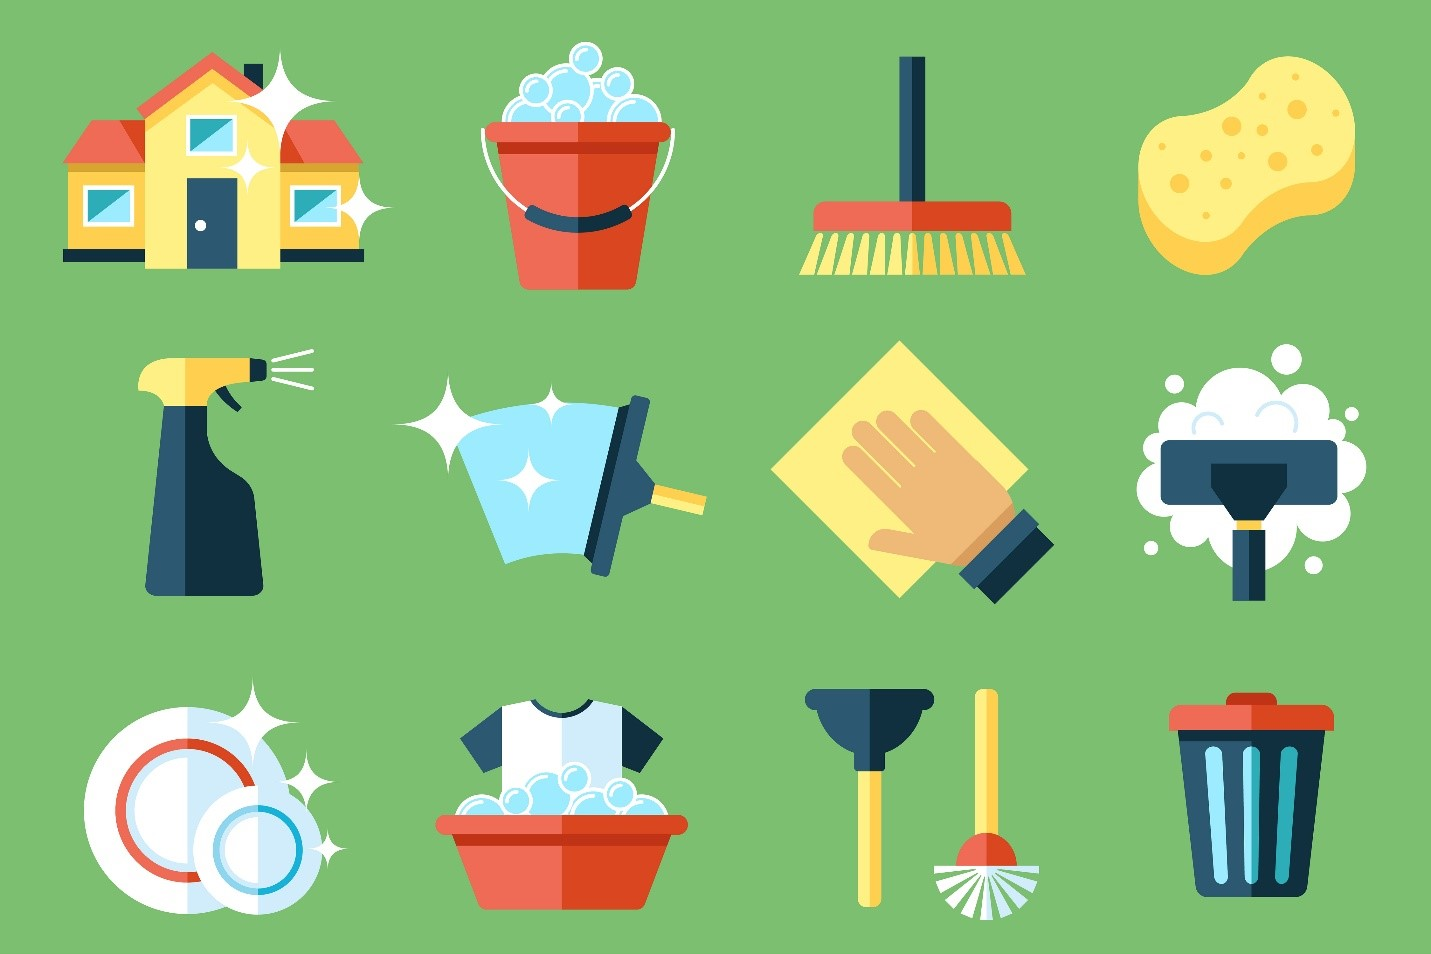 cleaning-tips-this-diwali-2